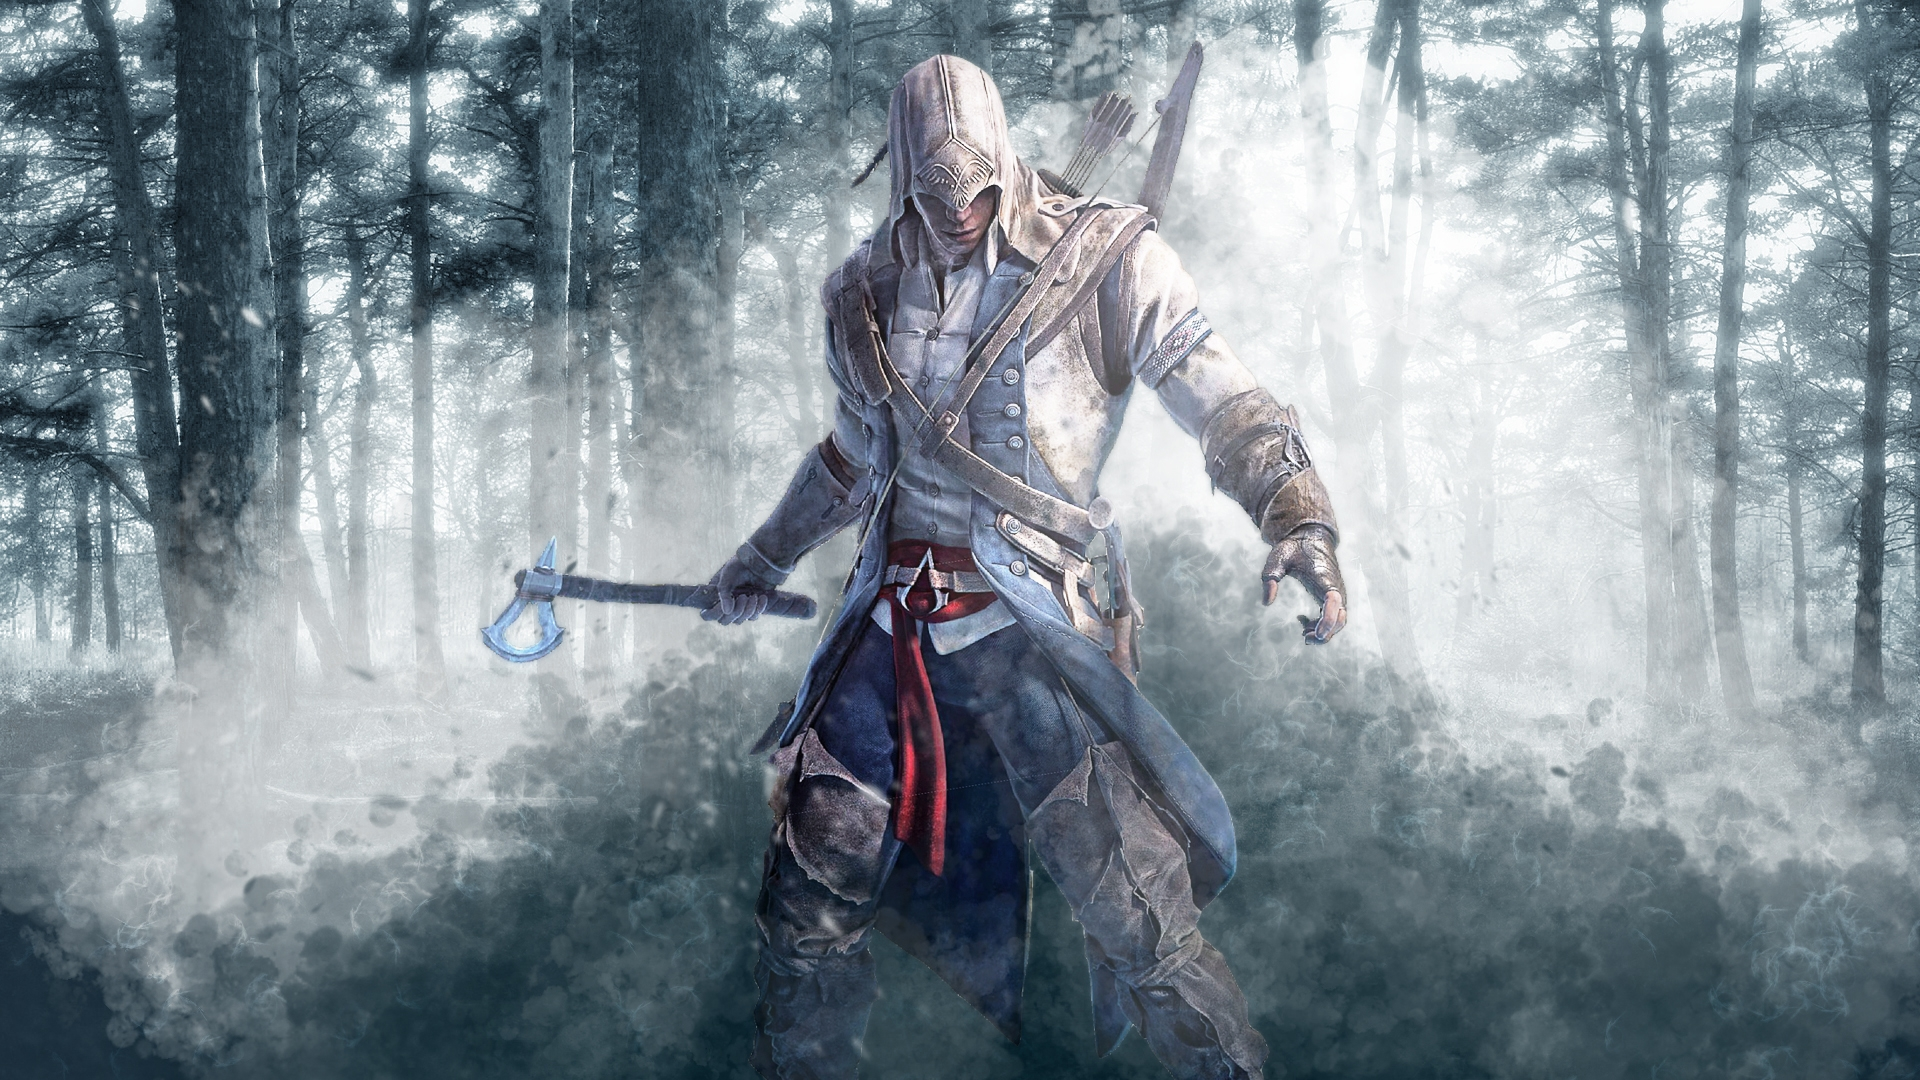 creed iii wallpaper - photo #4